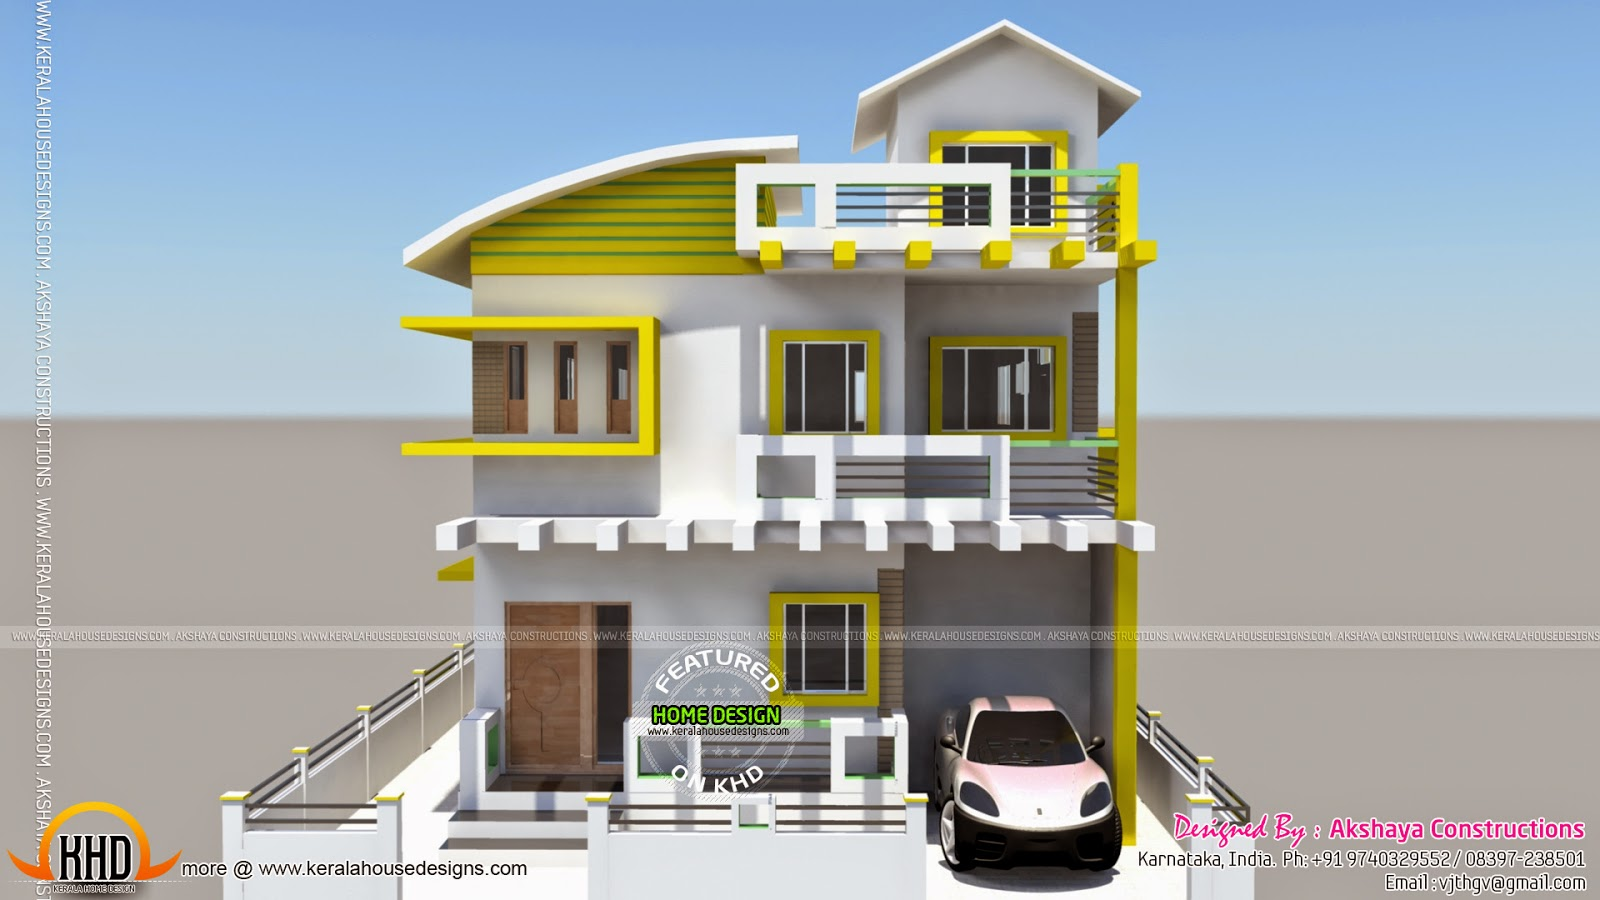 karnataka-home-design.jpg